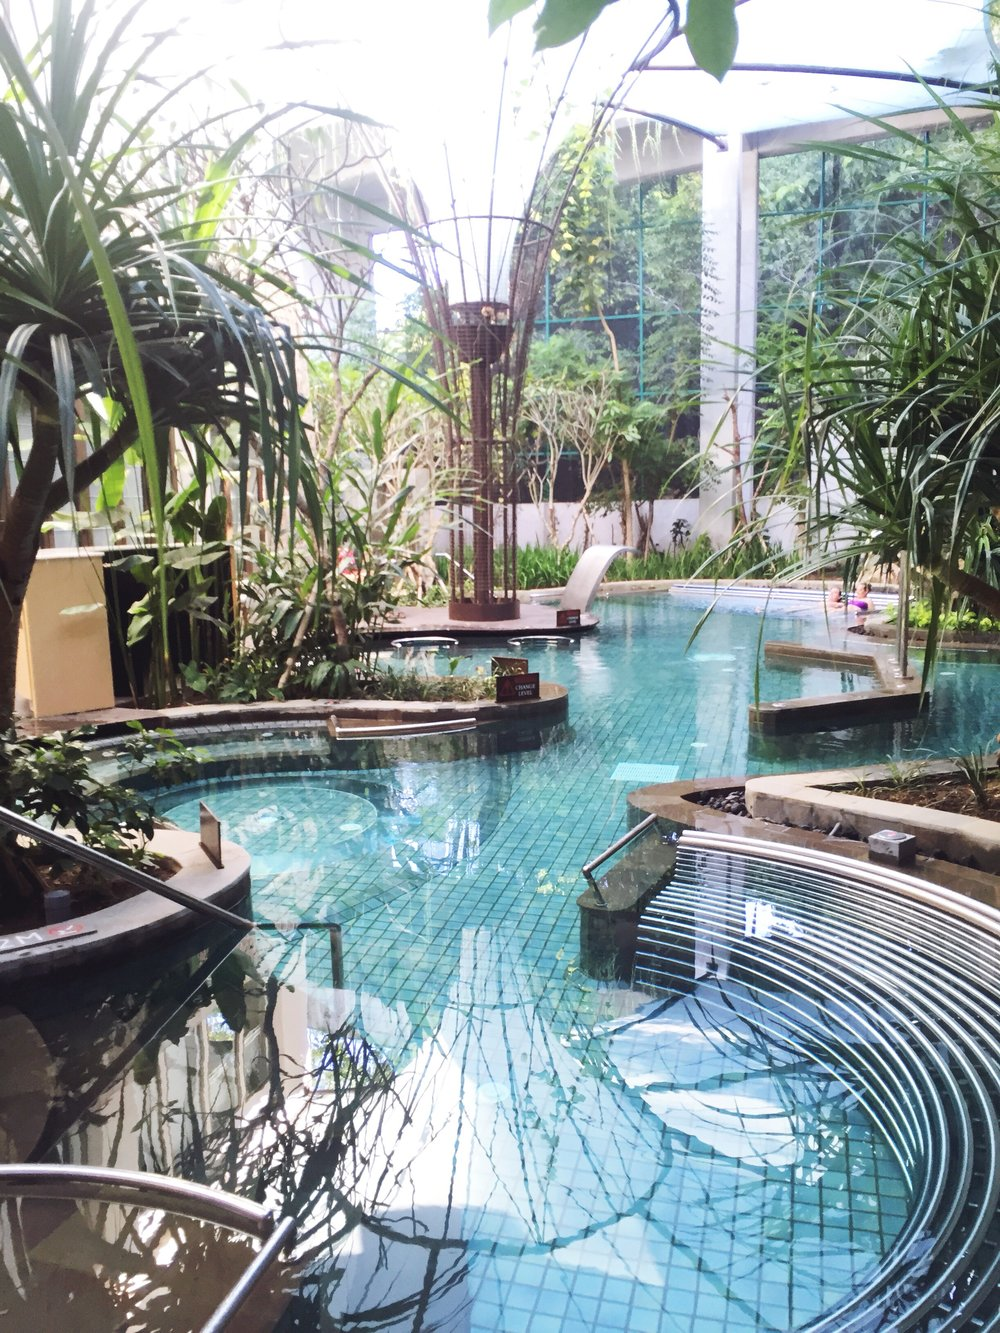 Hydro Vital Pool at The Spa in Nusa Dua